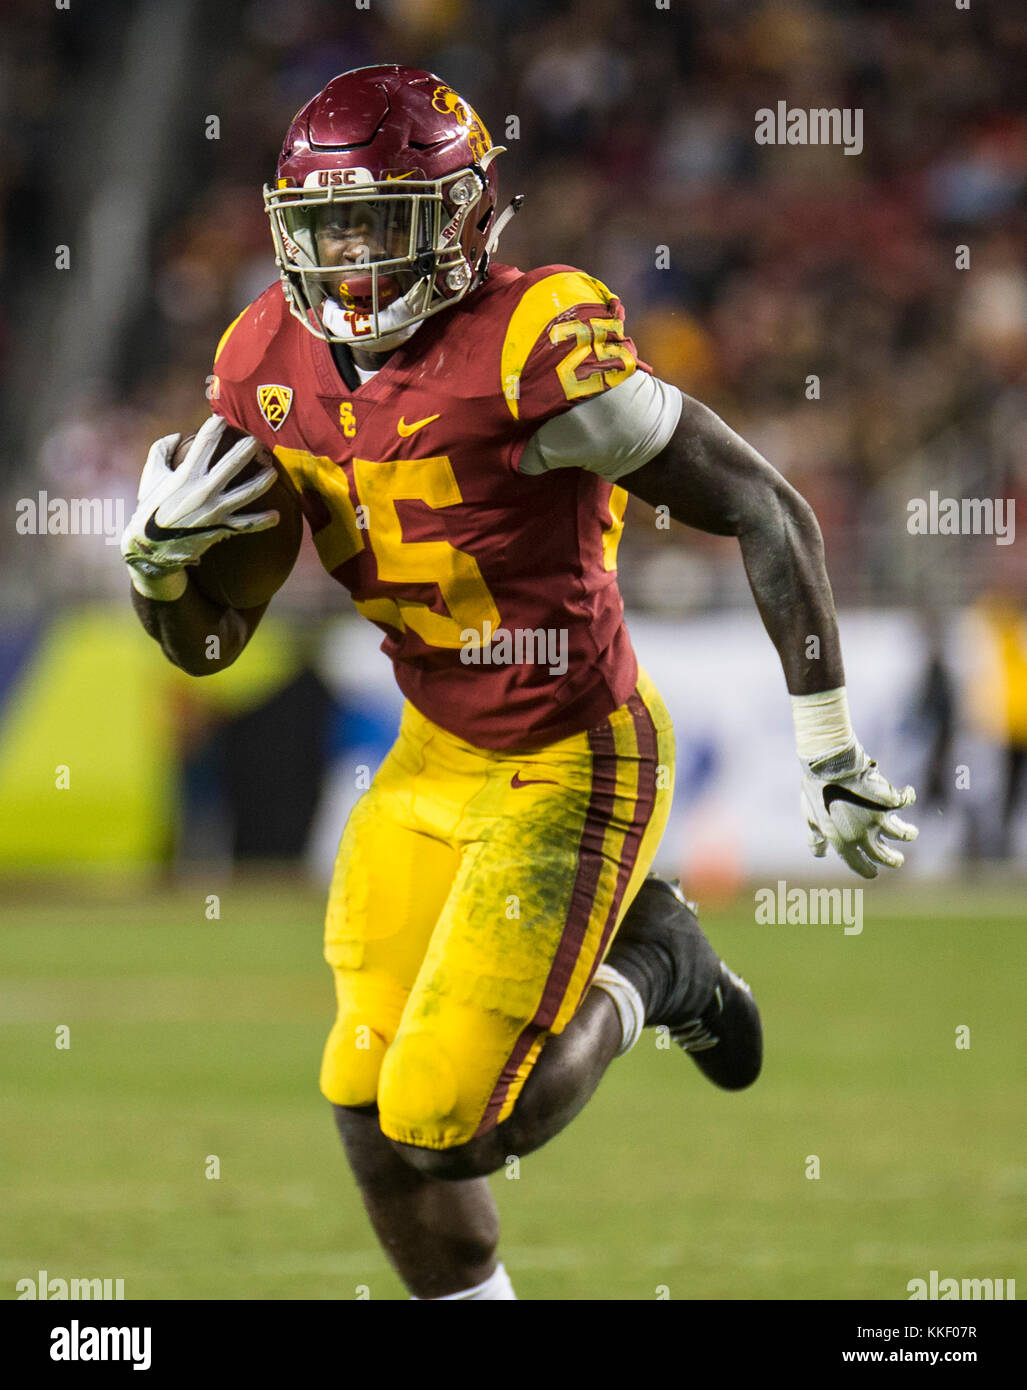 Dec 01 2017 Santa Clara U S A Ca Usc Running Back Ronald Jones Ii Stock Photo Alamy